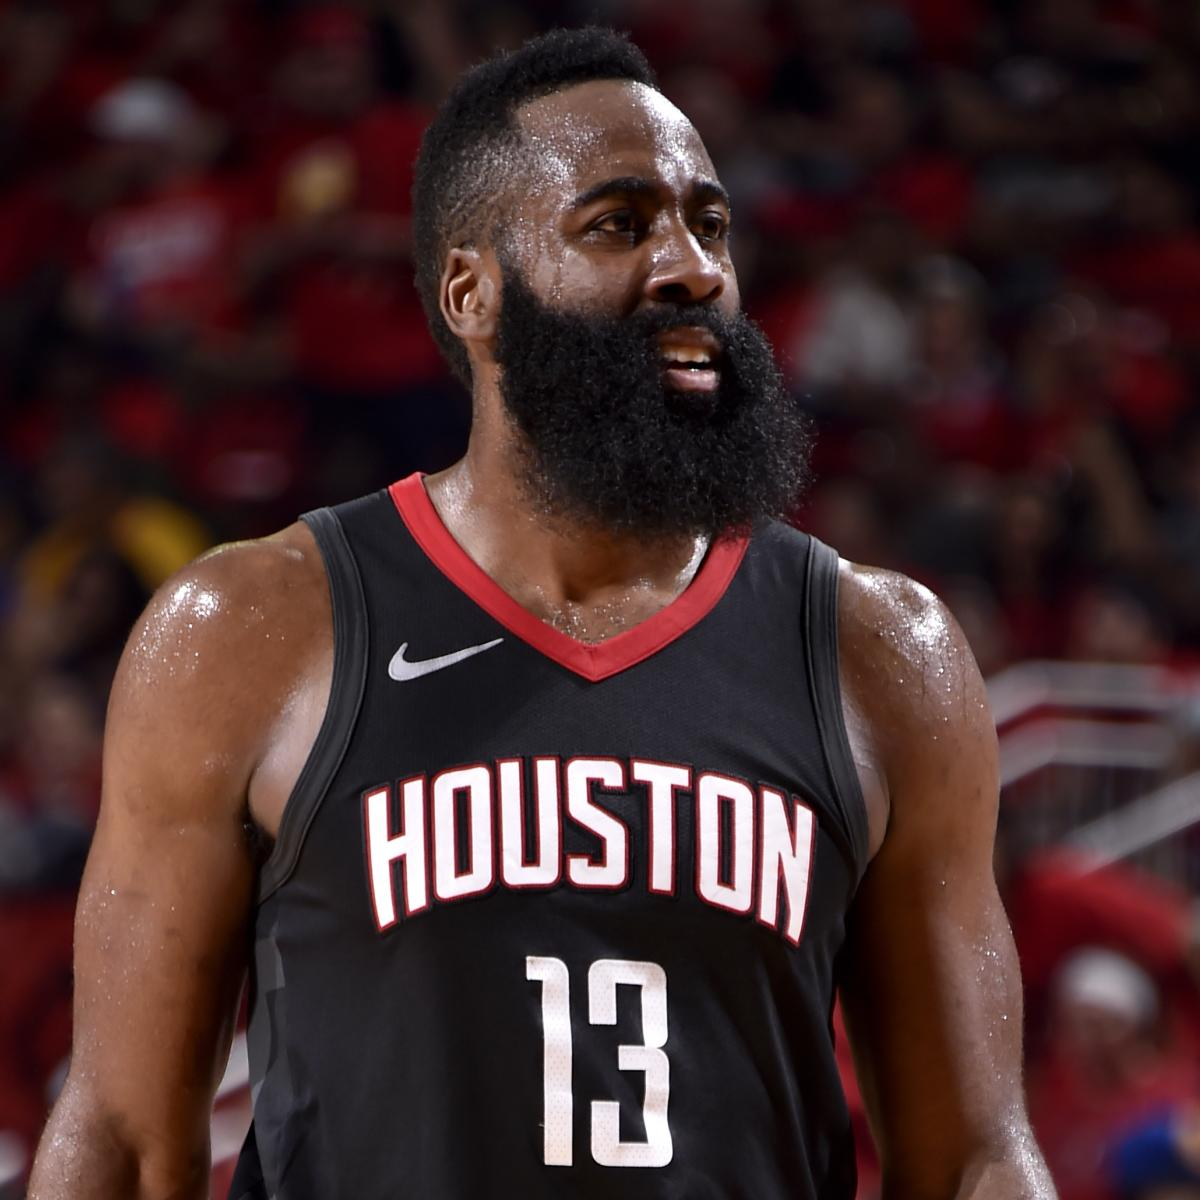 James Harden Quadruple Team: James Harden Wins 2018 NBA MVP Award Over LeBron James